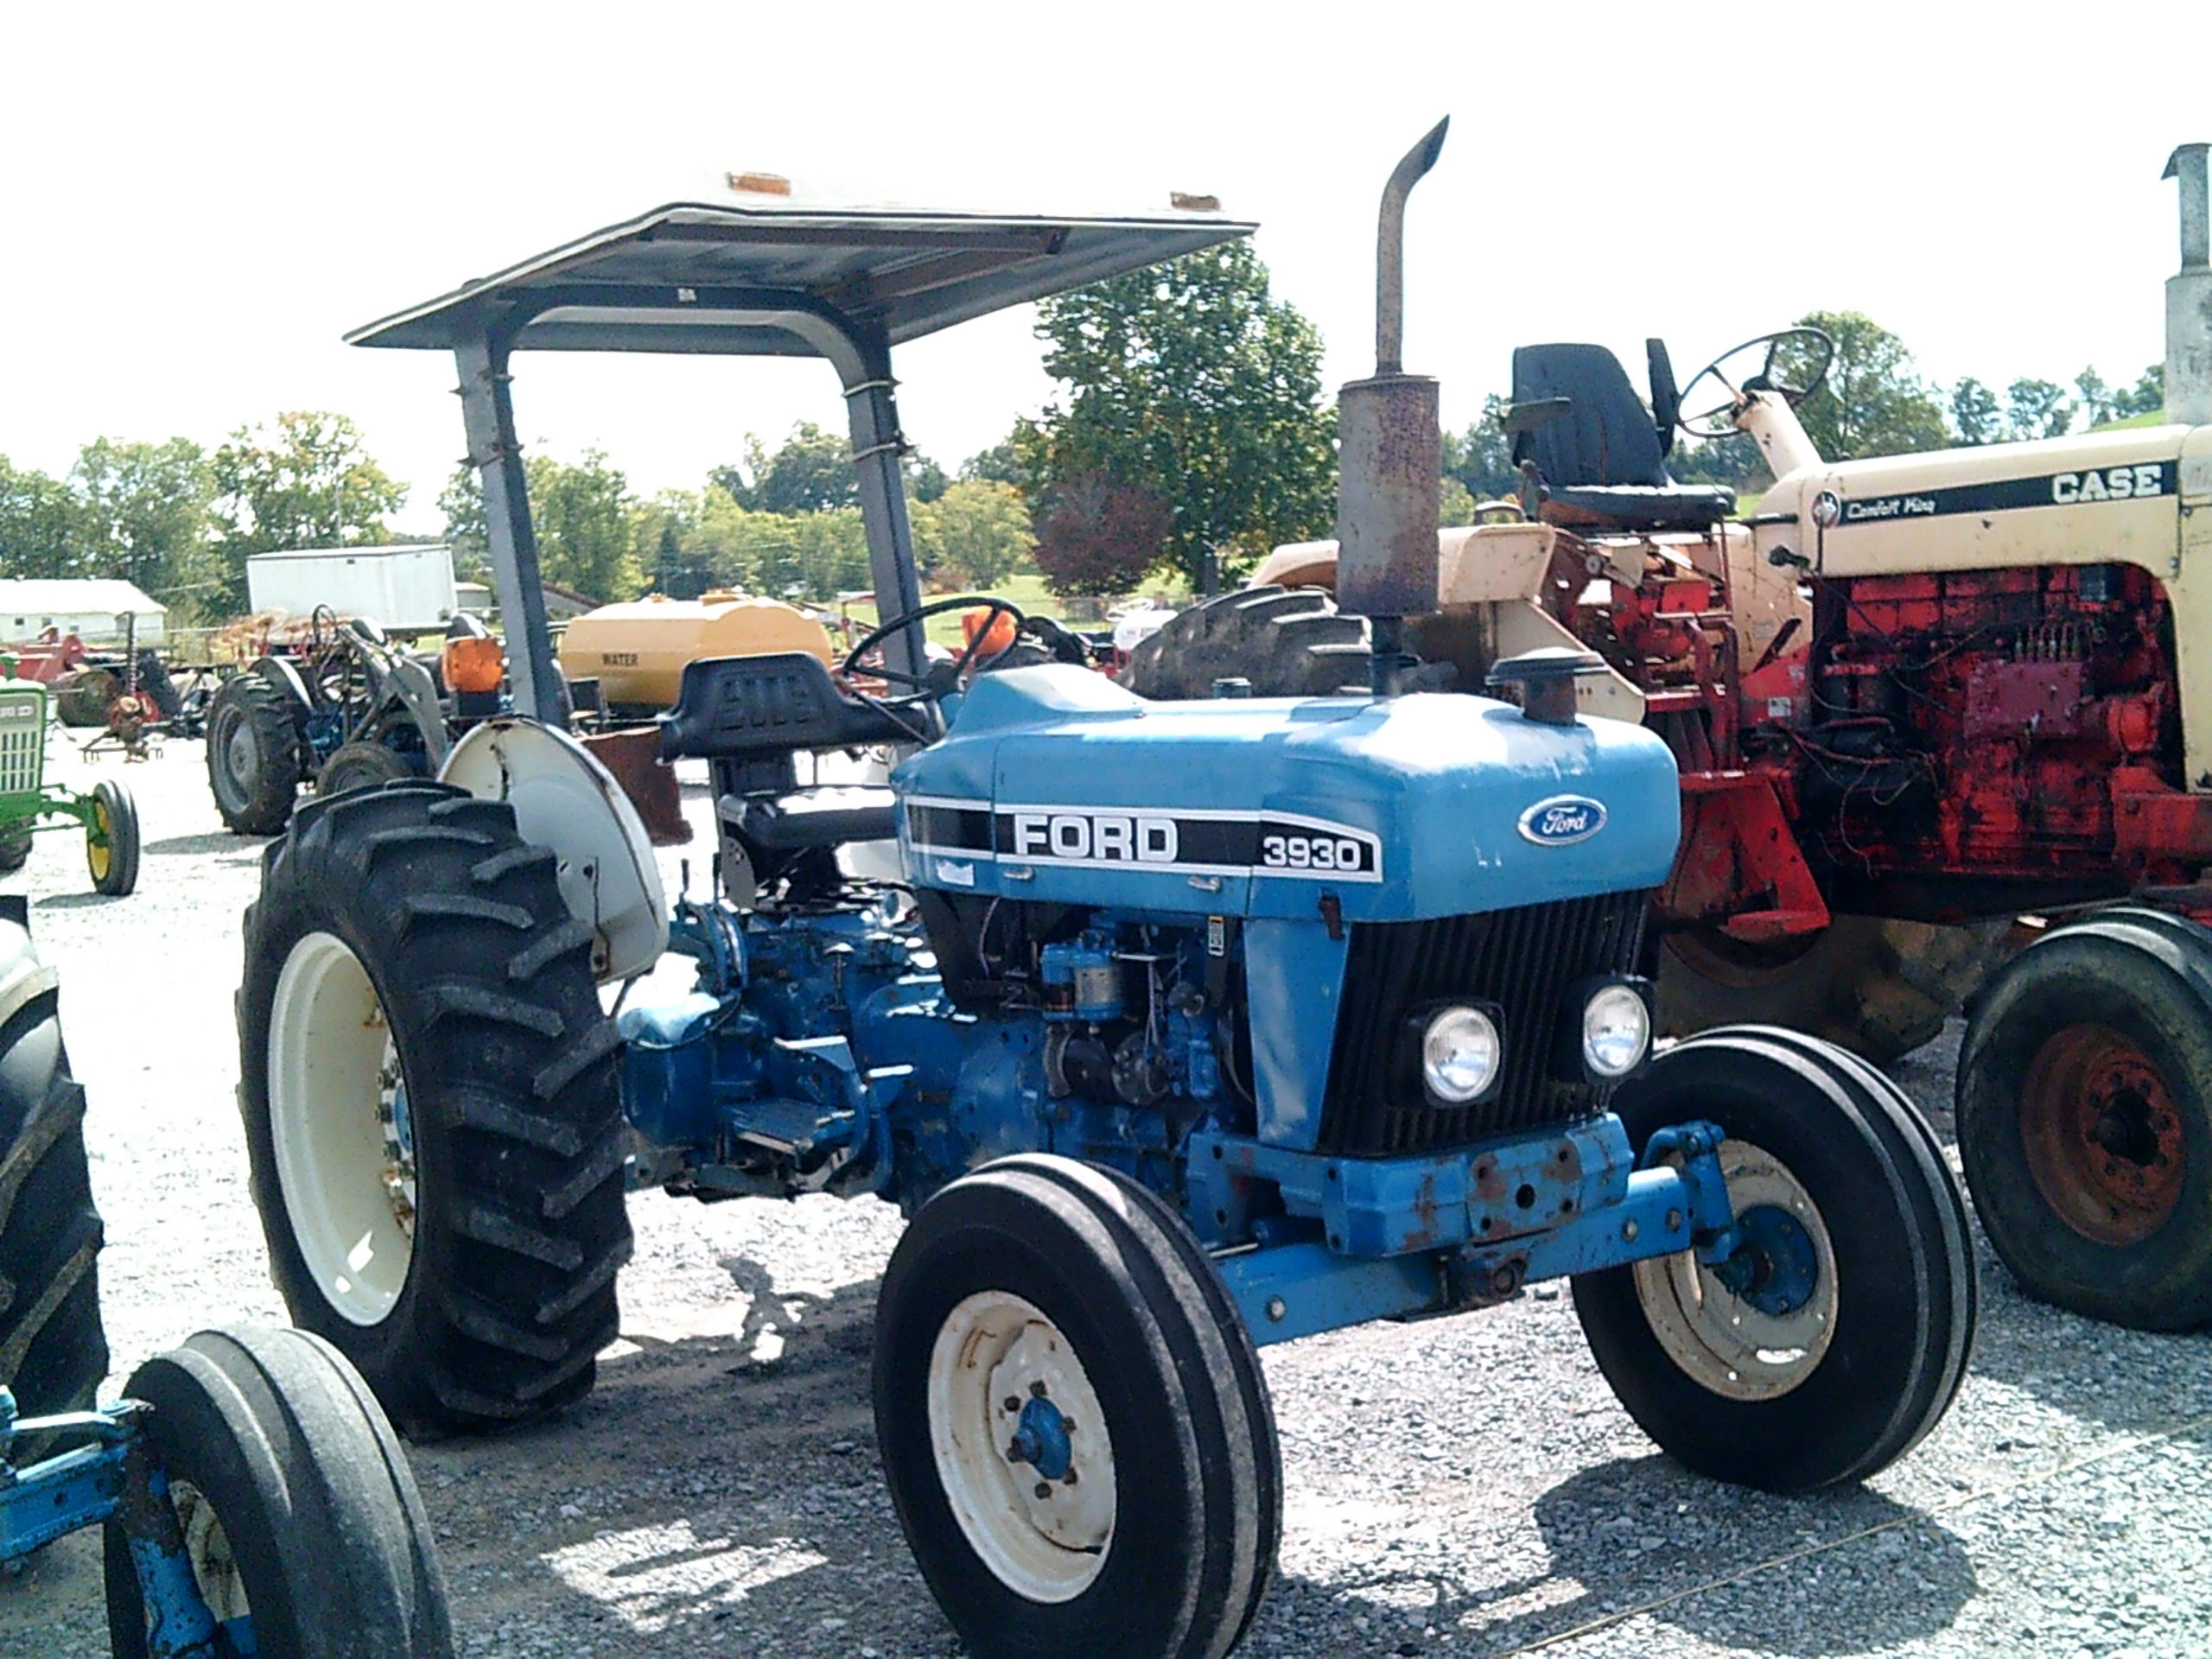 FORD 3930 TRACTOR W/ CANOPY TOP Image